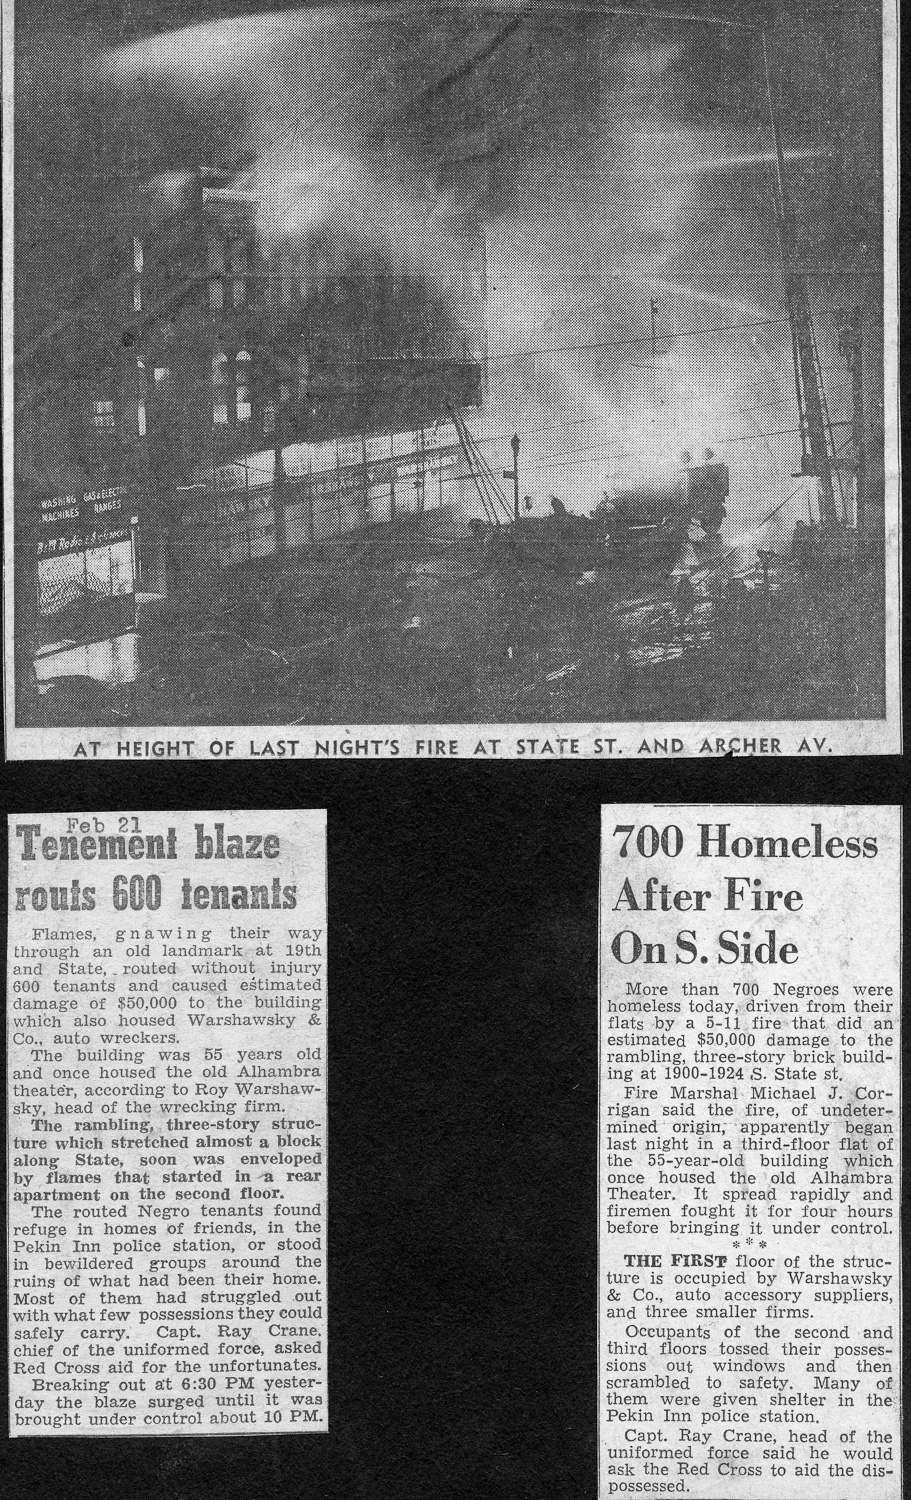 vintage news clippings about the Chicago Fire Department